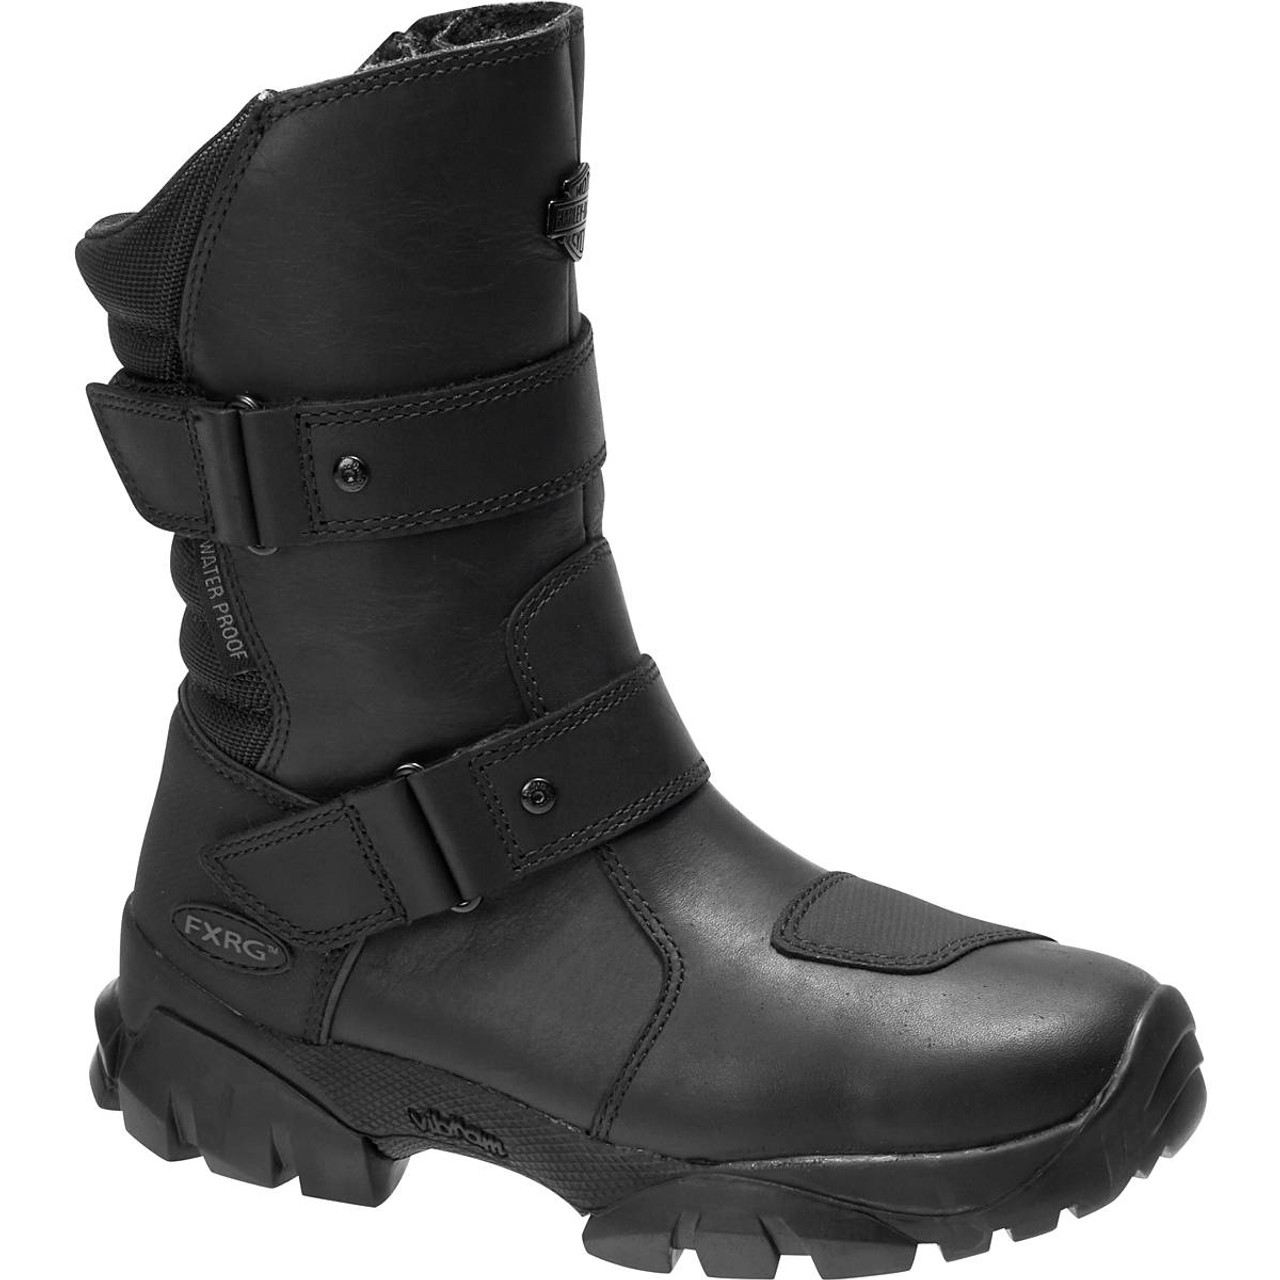 5a7788c96ff Harley Davidson Balfour Women's Waterproof Leather Riding Boots in ...